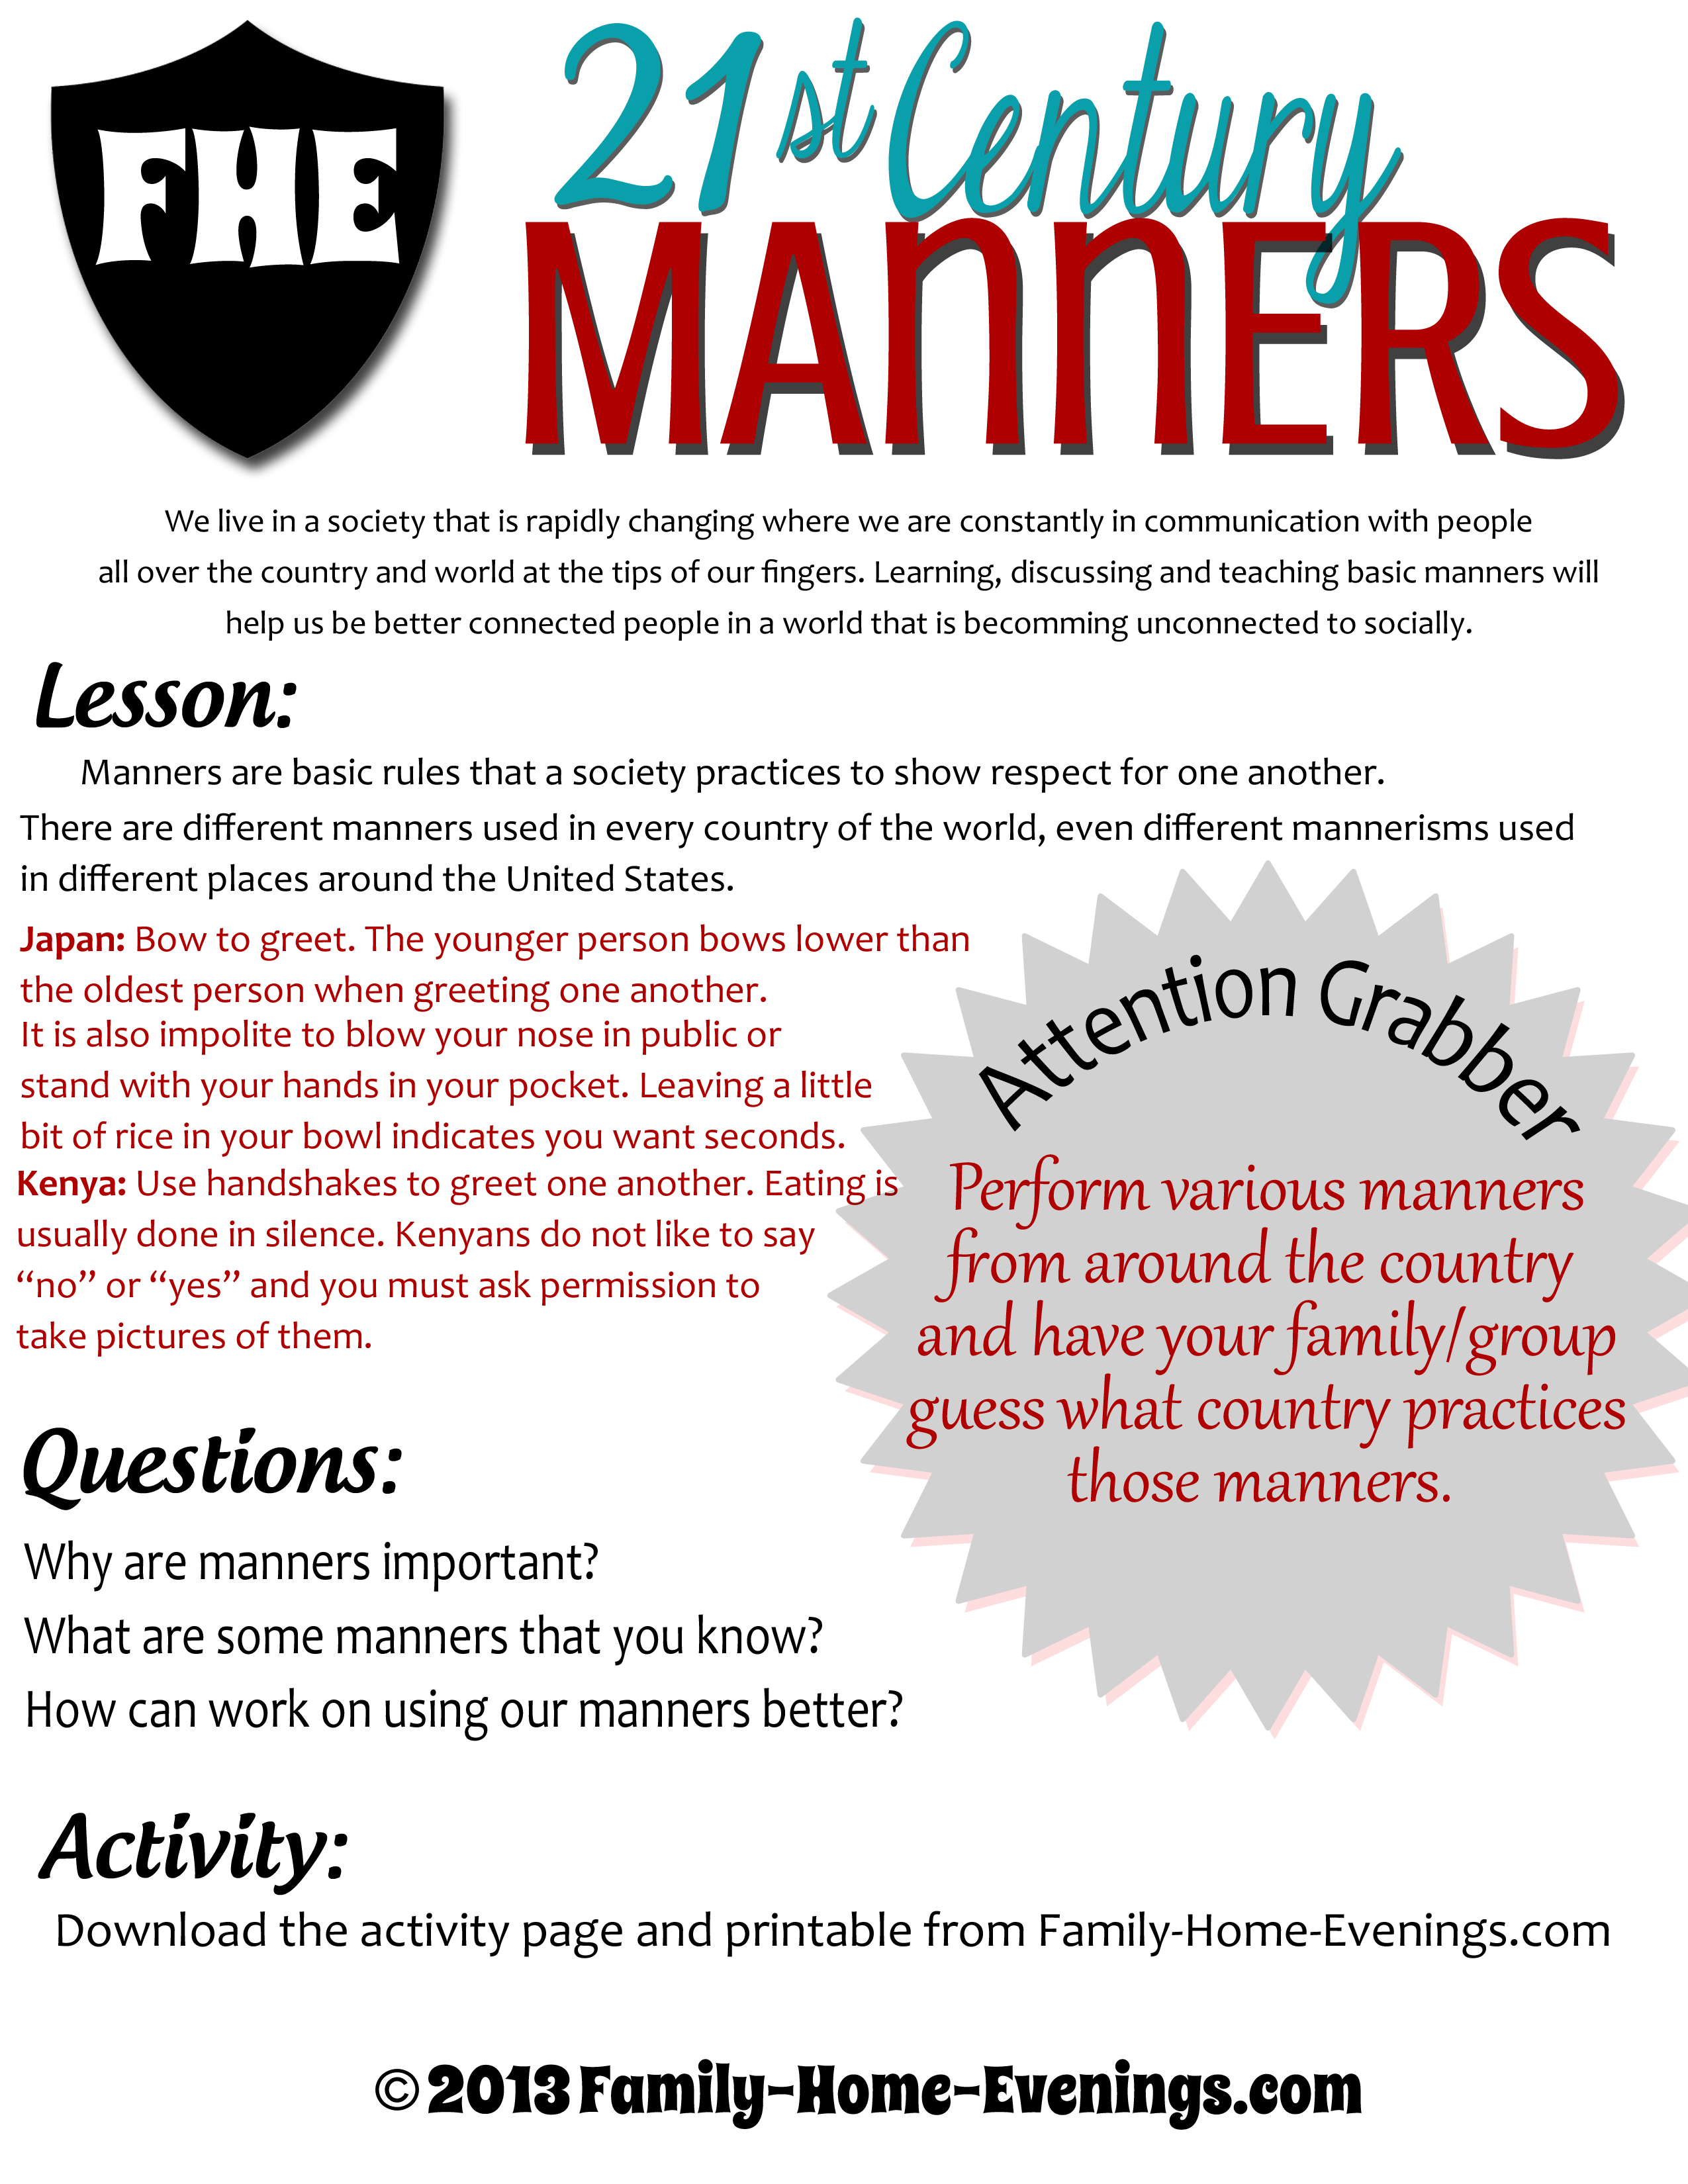 Lessons on Manners in 21st Century | FHE Ideas | Pinterest | Family ...